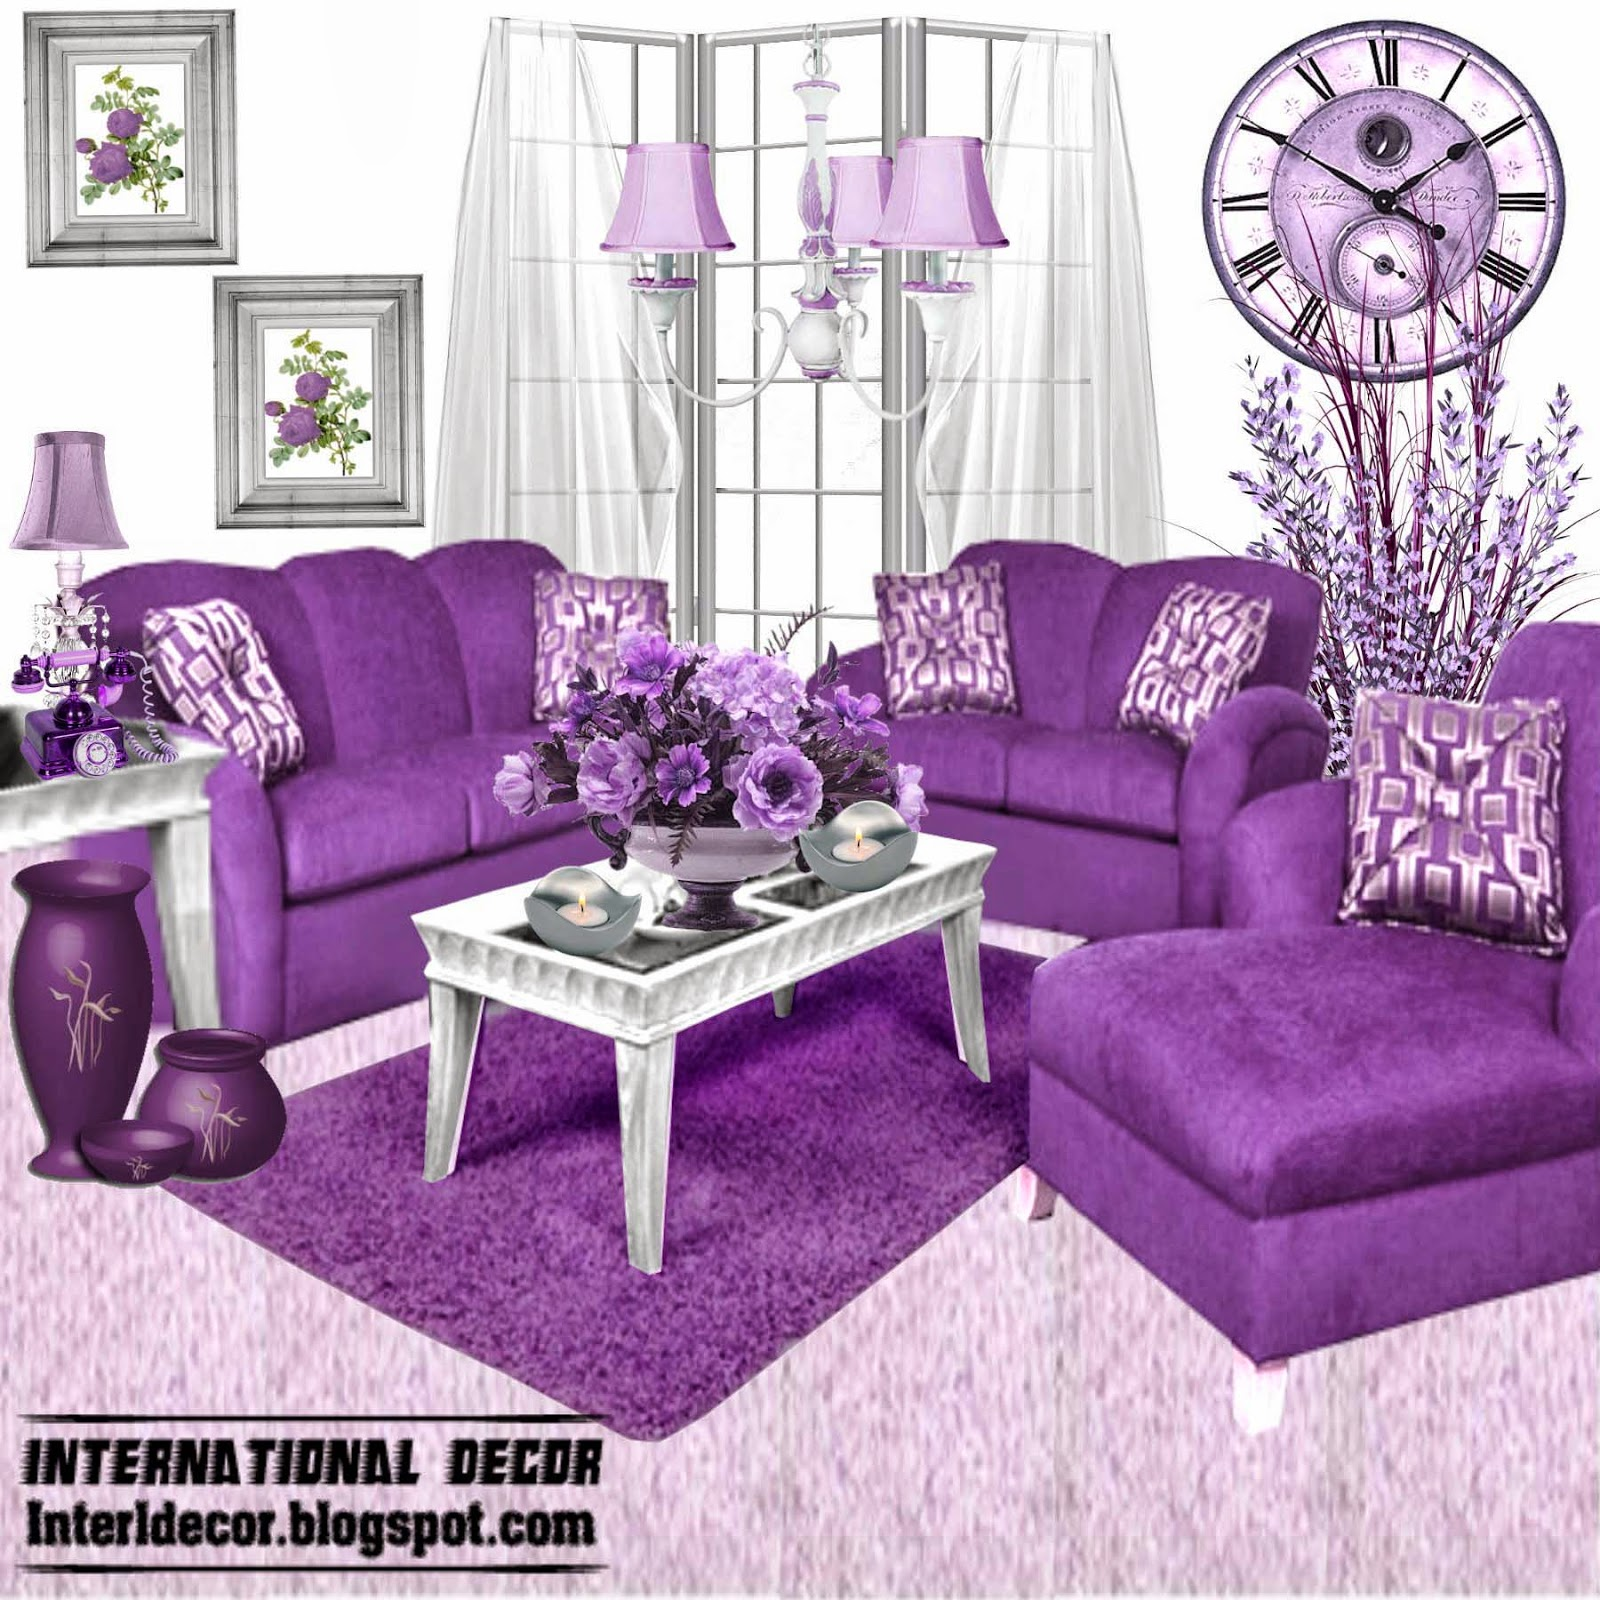 Luxury purple furniture sets sofas chairs for living for Room furniture design